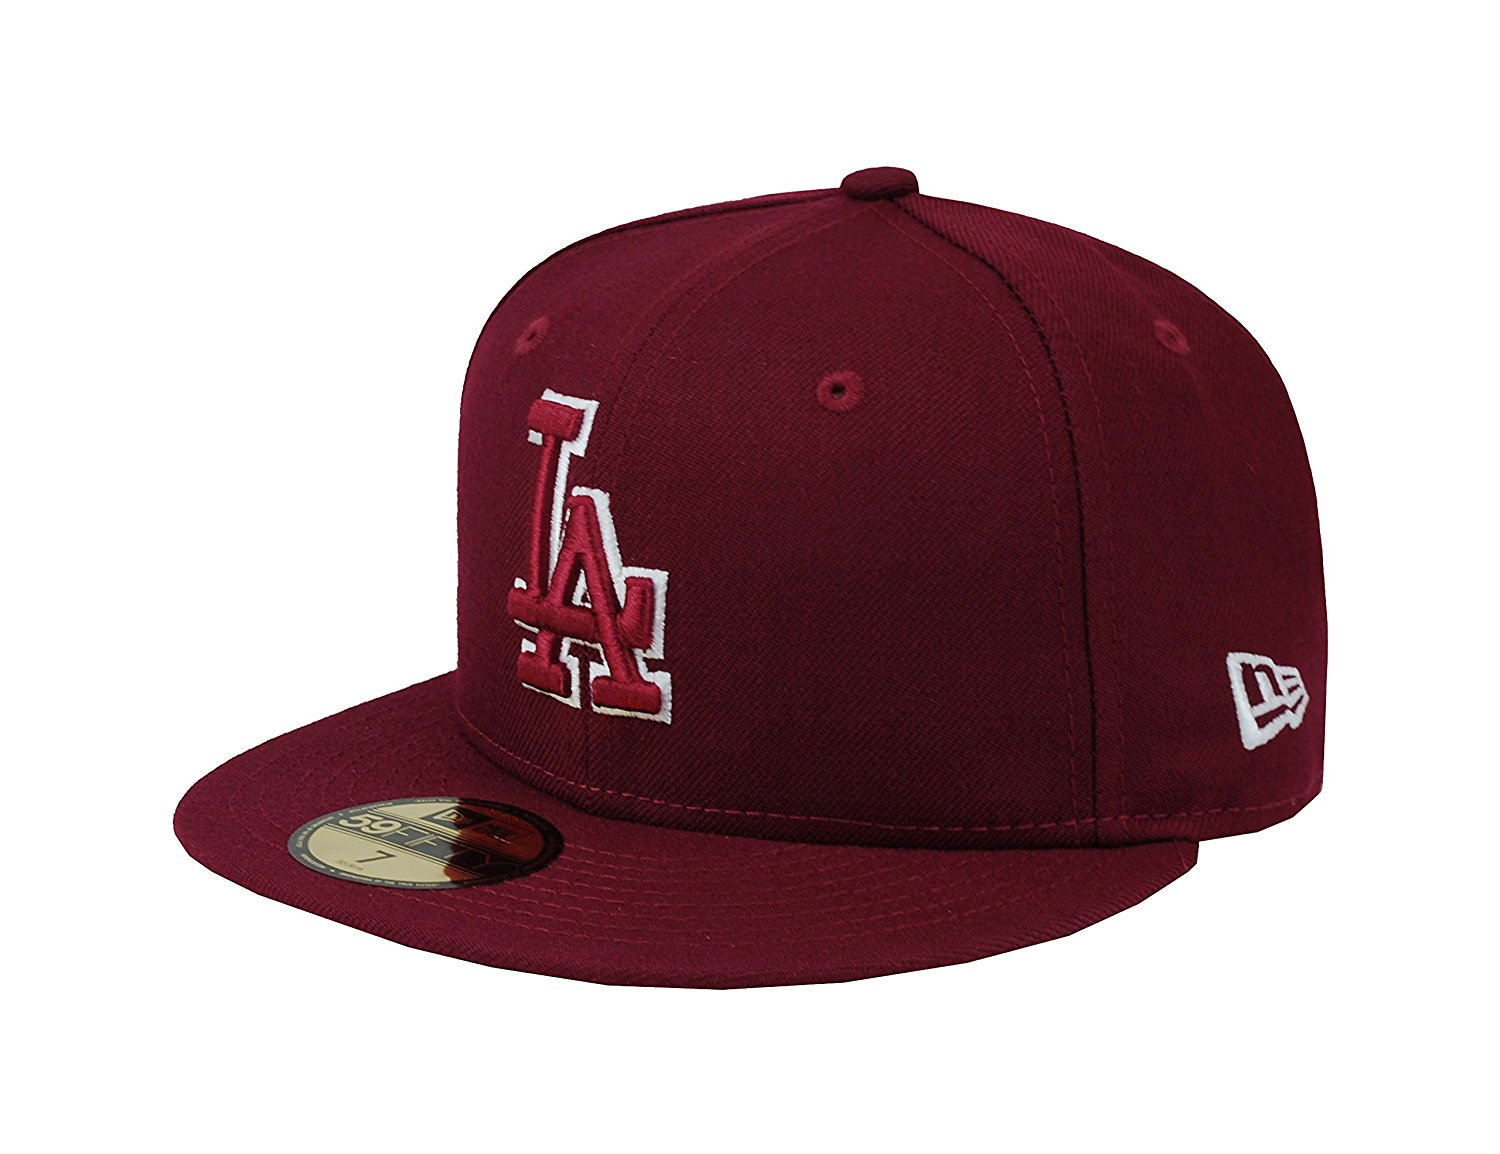 Get Quotations · New Era 59Fifty Men s Hat Los Angeles Dodgers Burgundy  Fitted Headwear Cap c52486097378